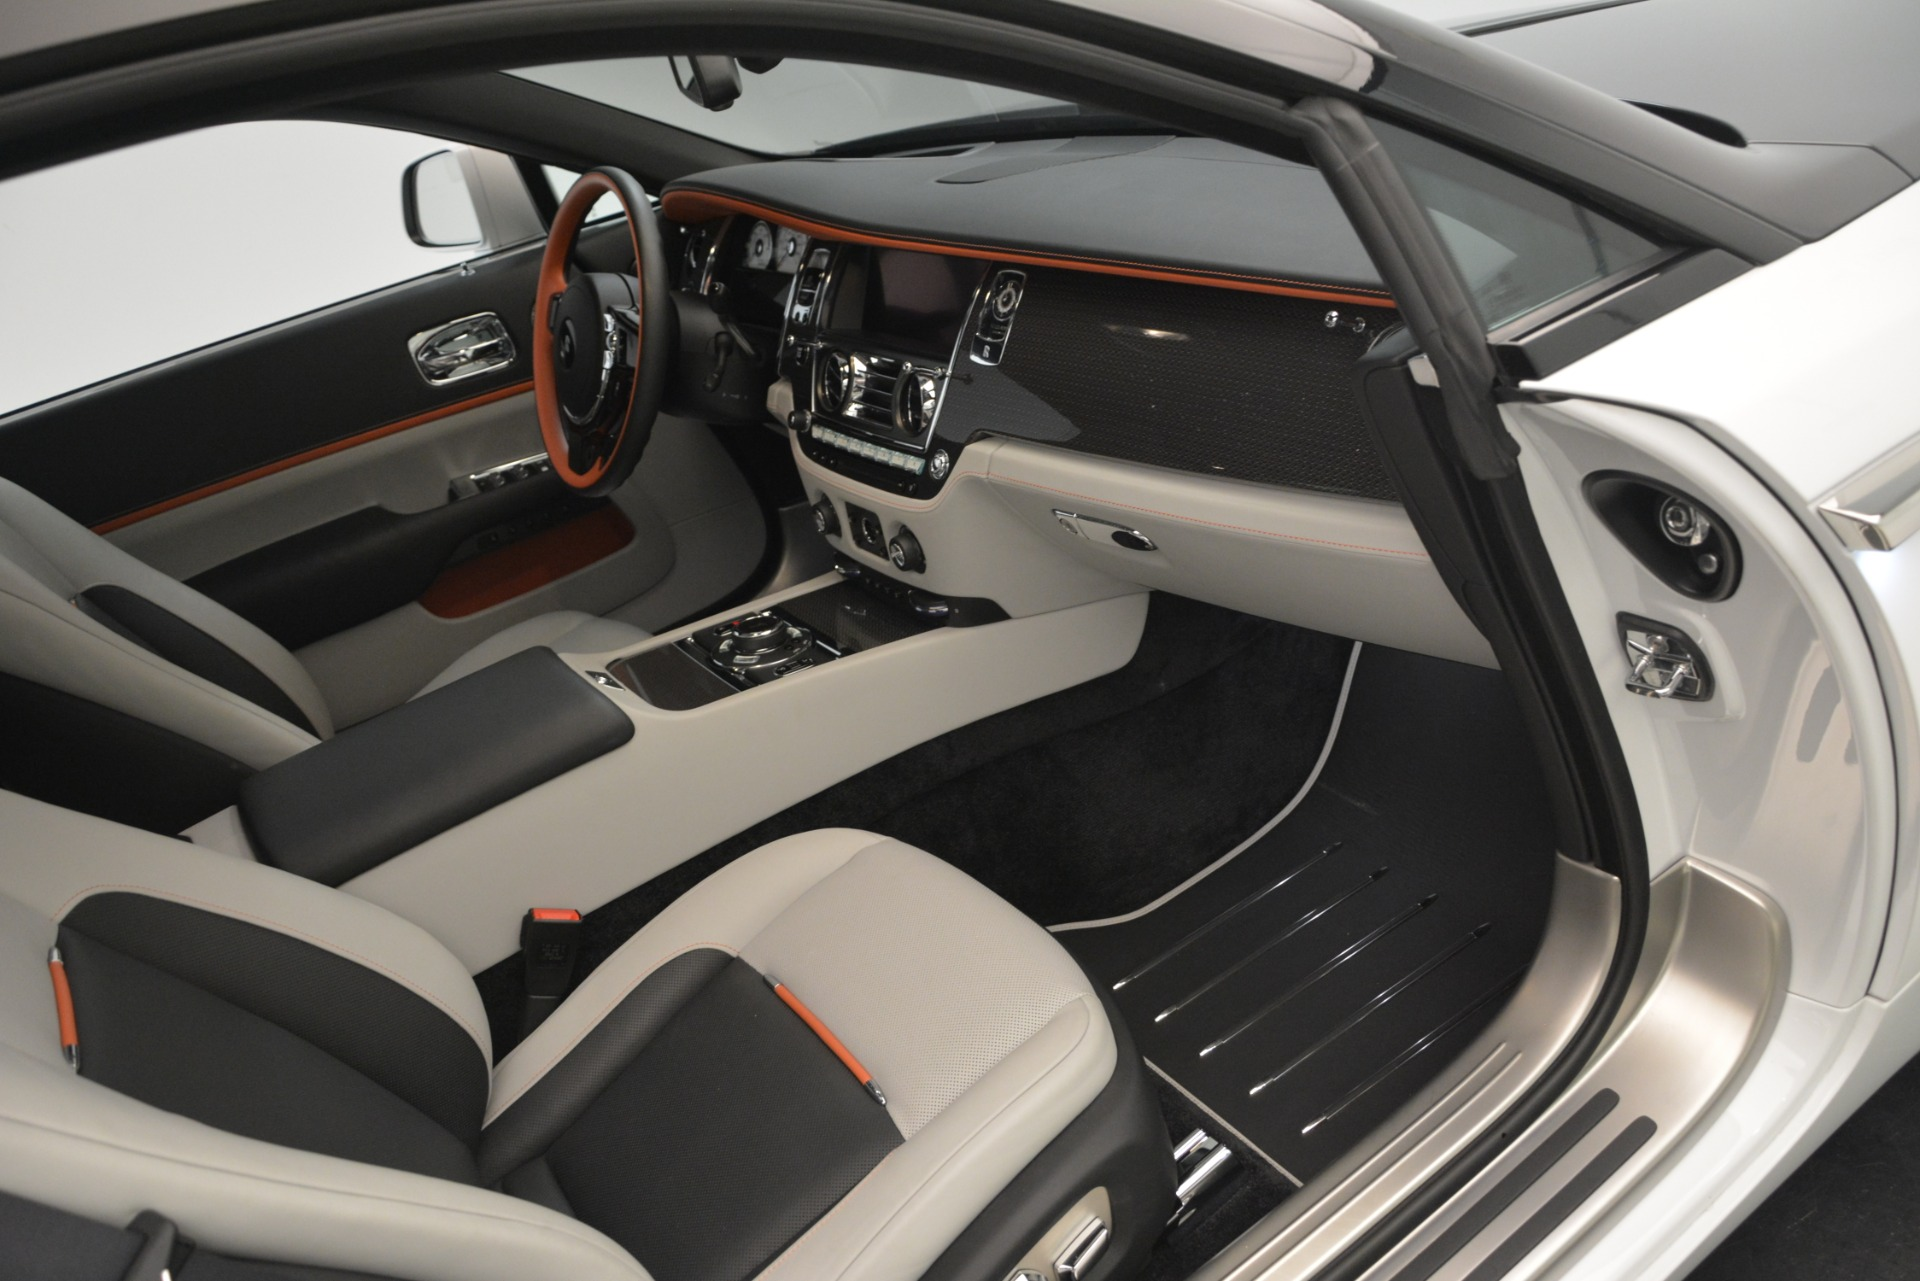 Used 2018 Rolls-Royce Wraith Black Badge Nebula Collection For Sale In Westport, CT 2491_p23